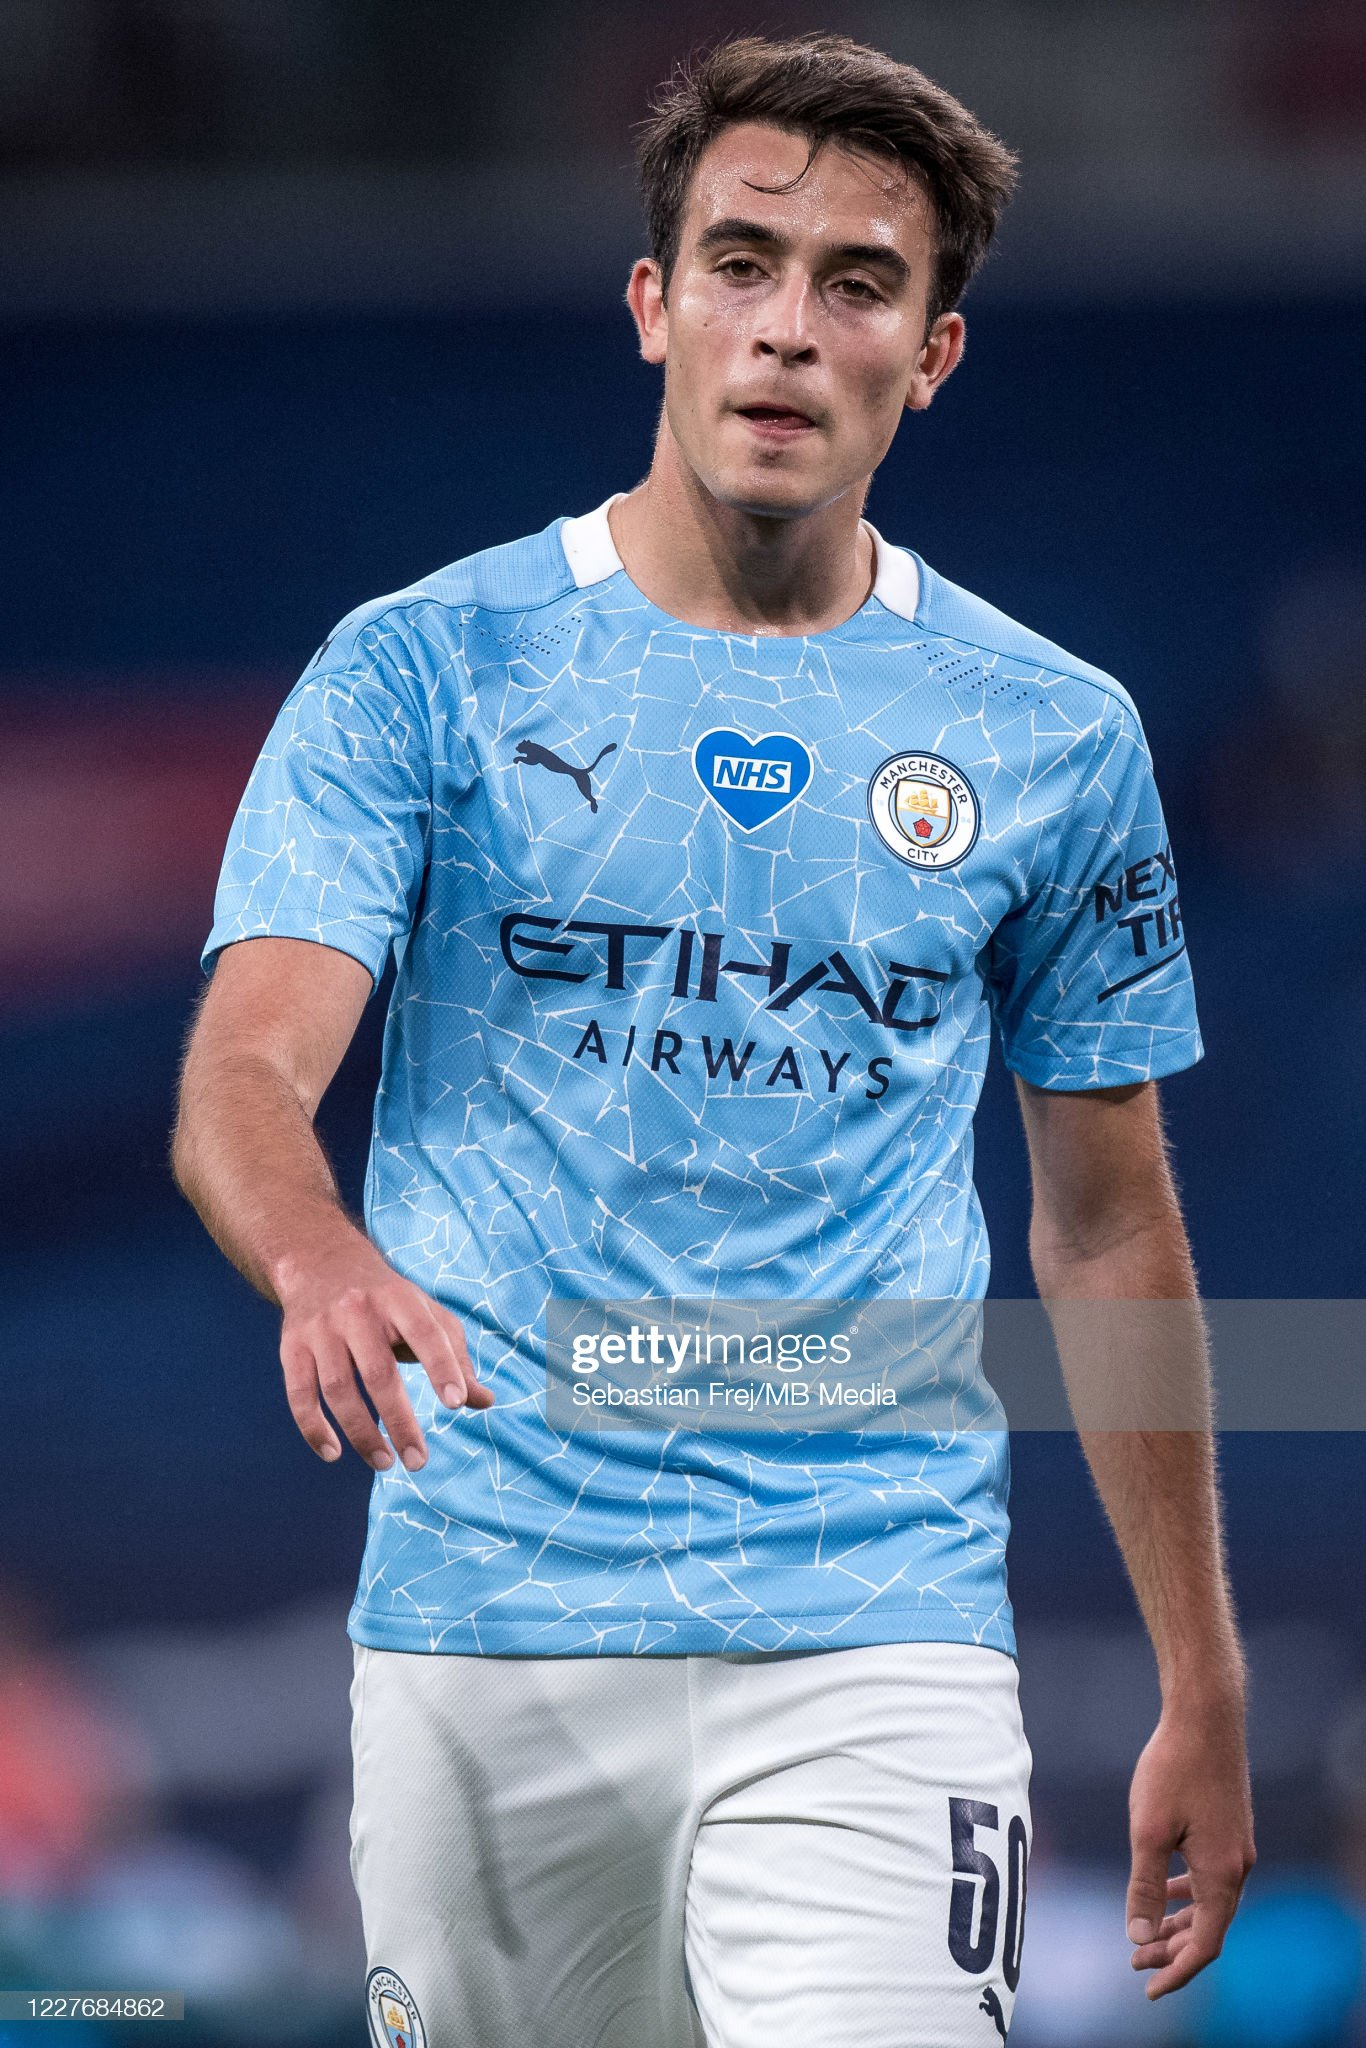 ¿Cuánto mide Eric Garcia? - Altura - Real height Eric-garcia-of-manchester-city-looks-on-during-the-fa-cup-semi-final-picture-id1227684862?s=2048x2048